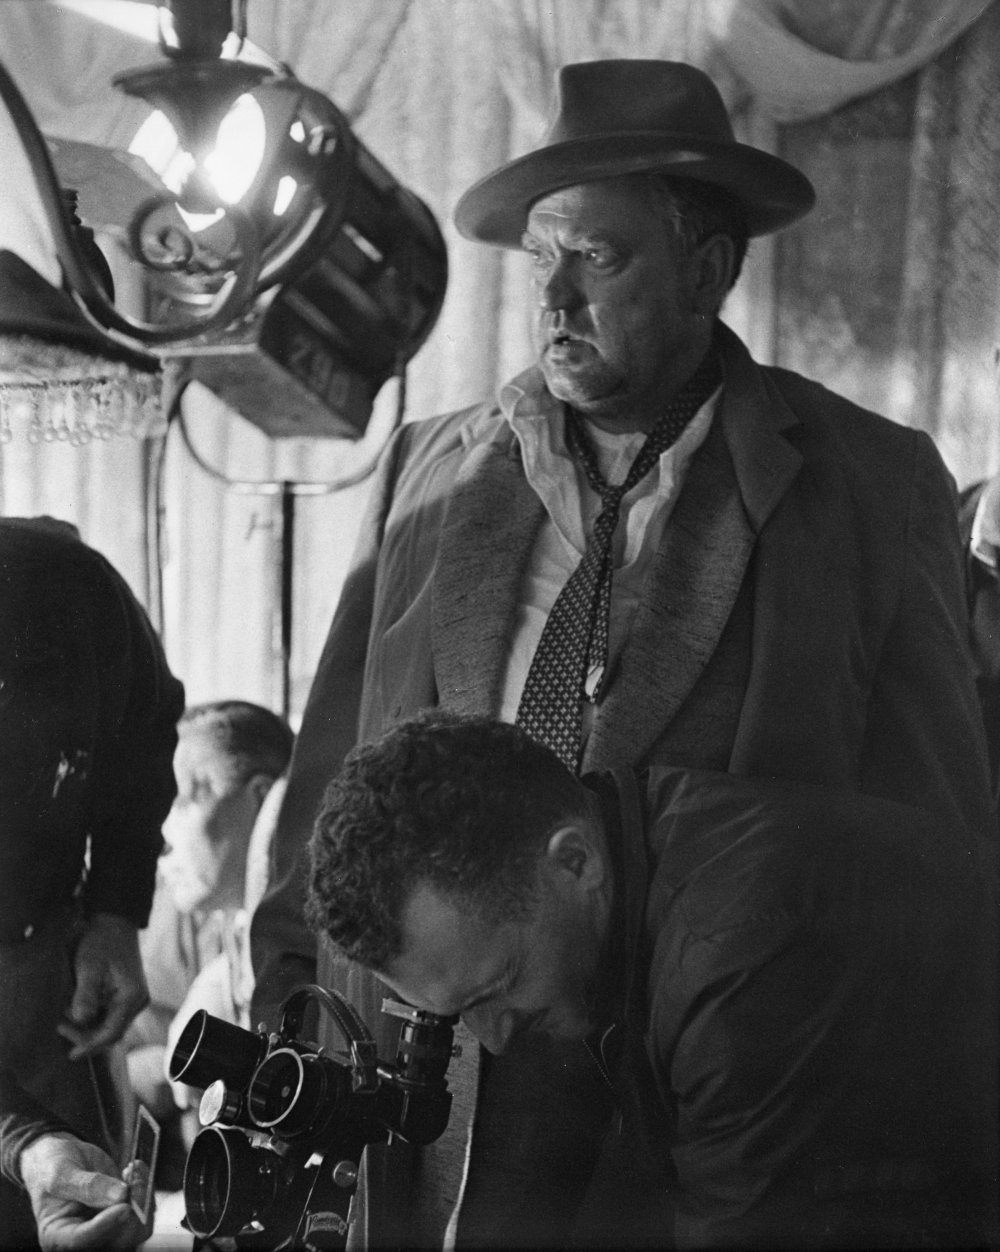 Orson Welles with director of photography Russell Metty